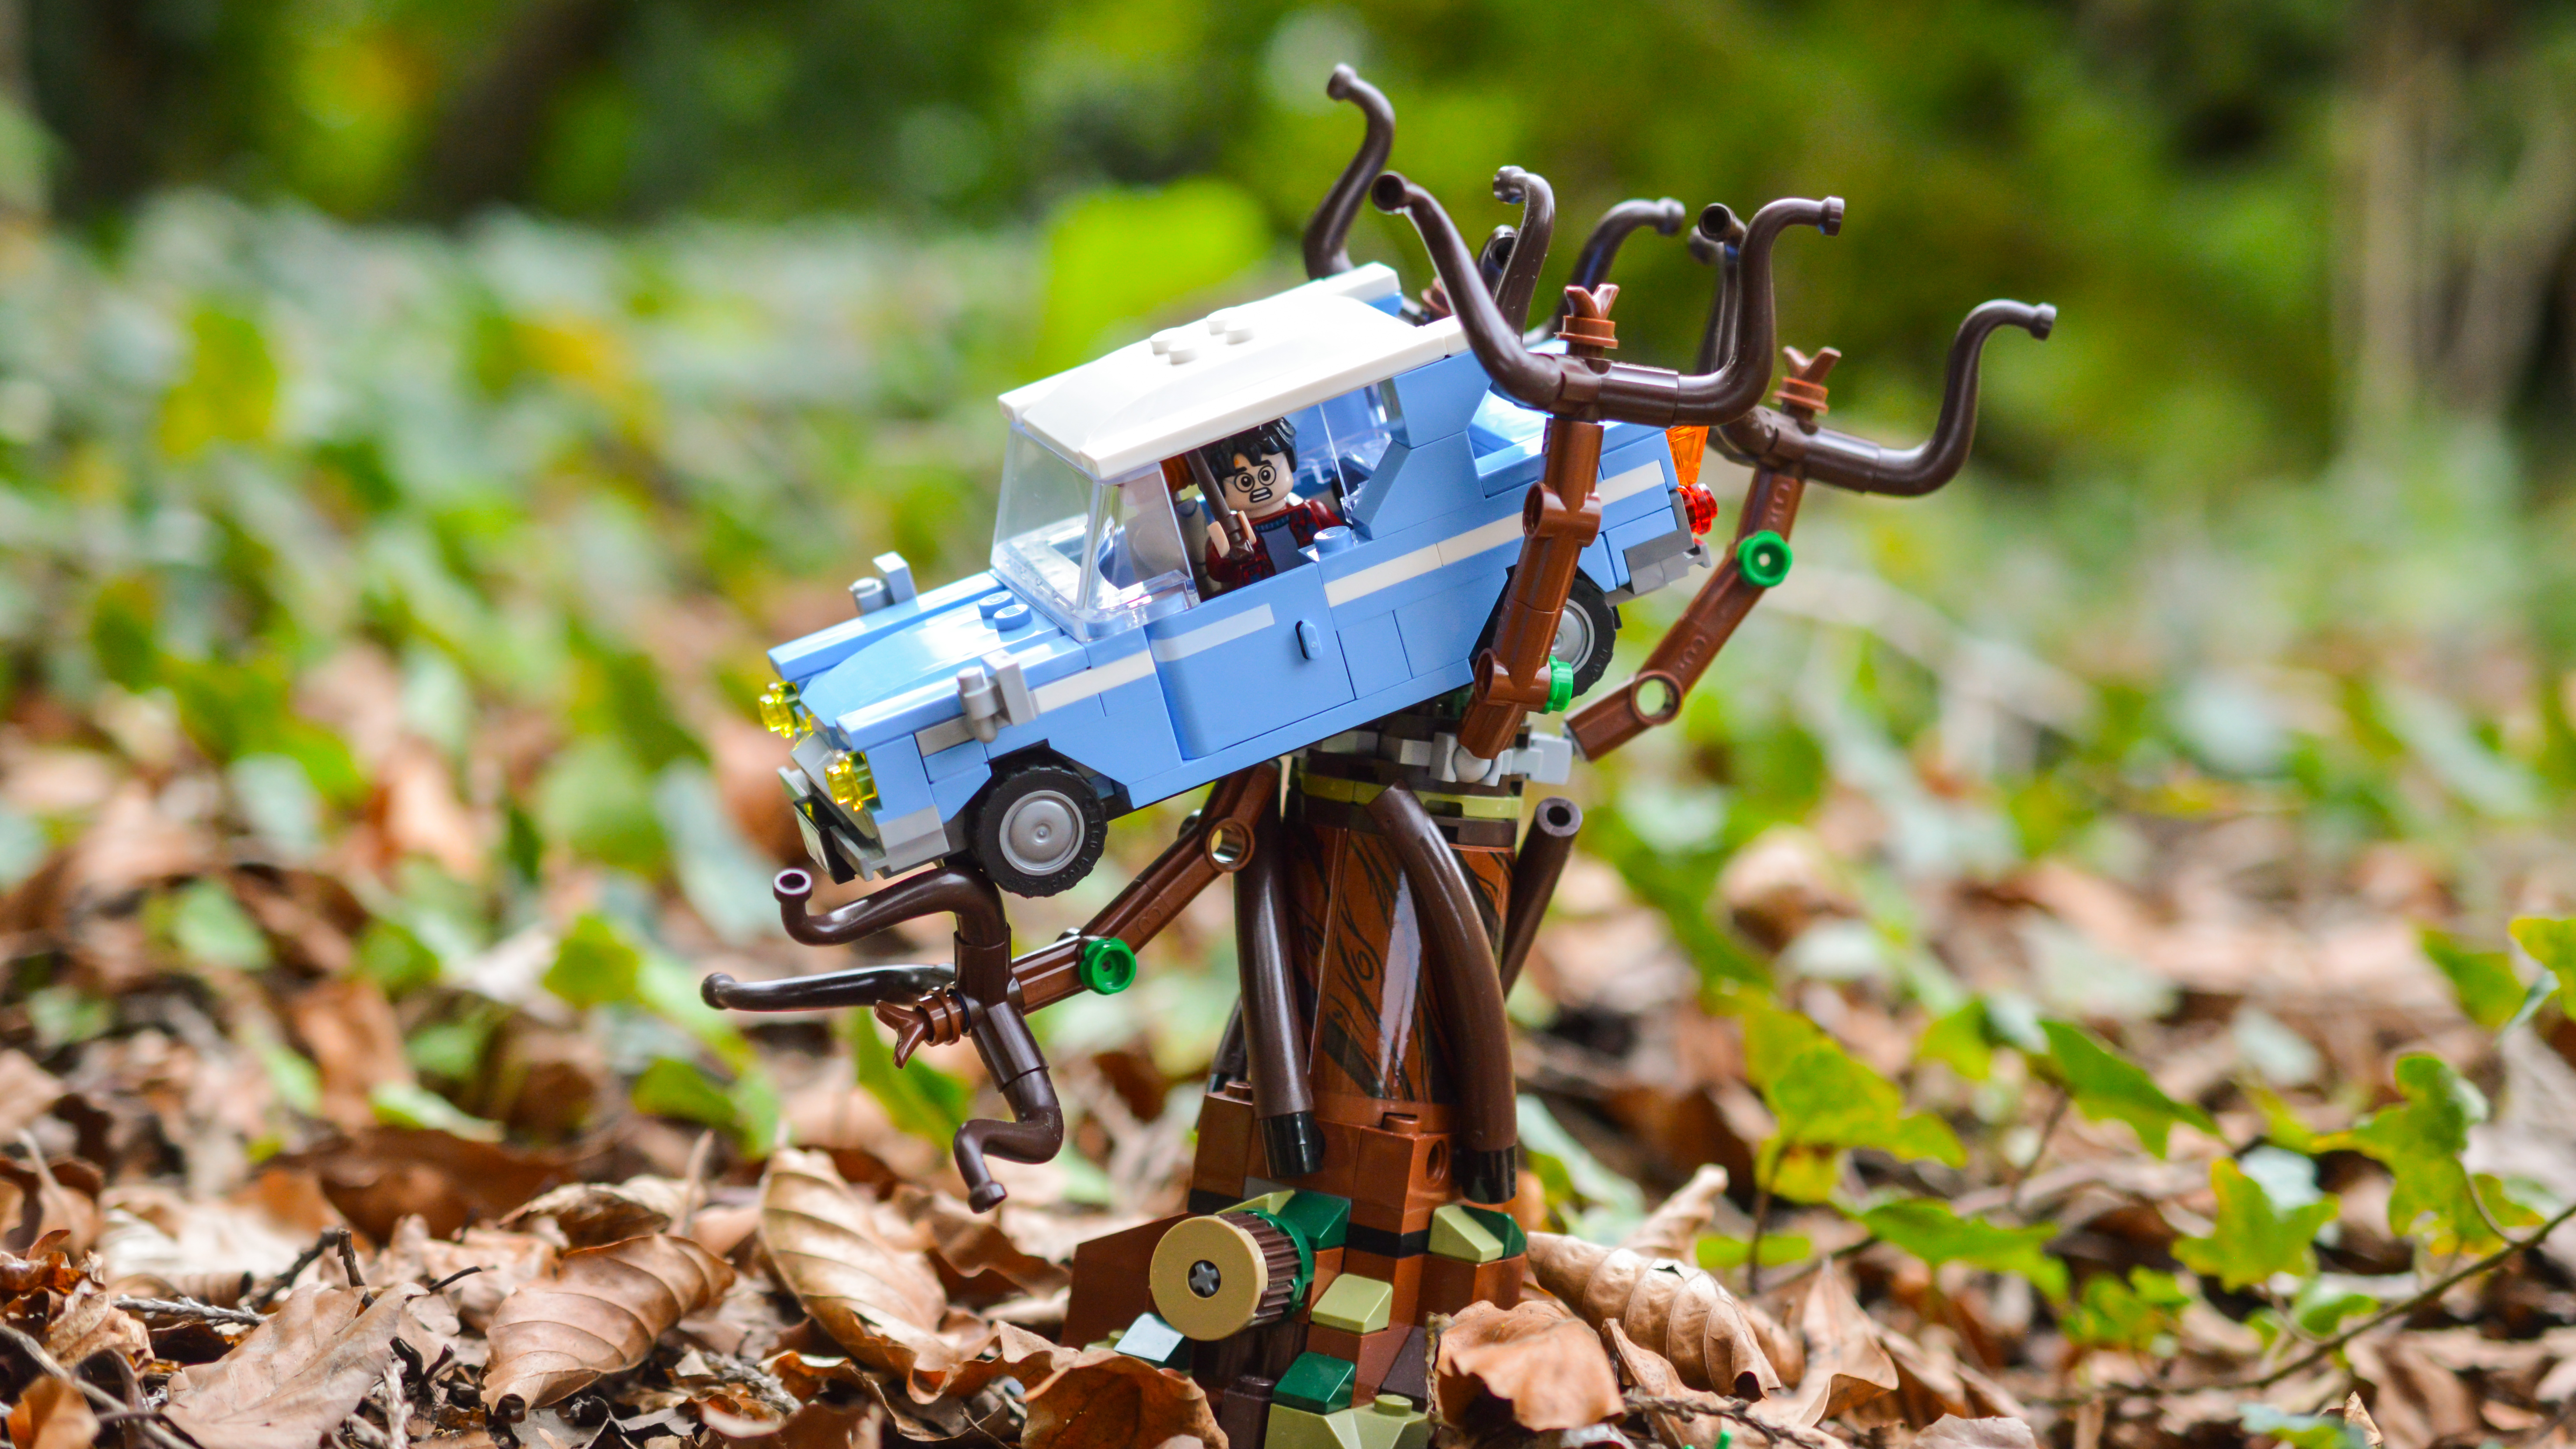 LEGO Ford Anglia sitting in Whomping Willow